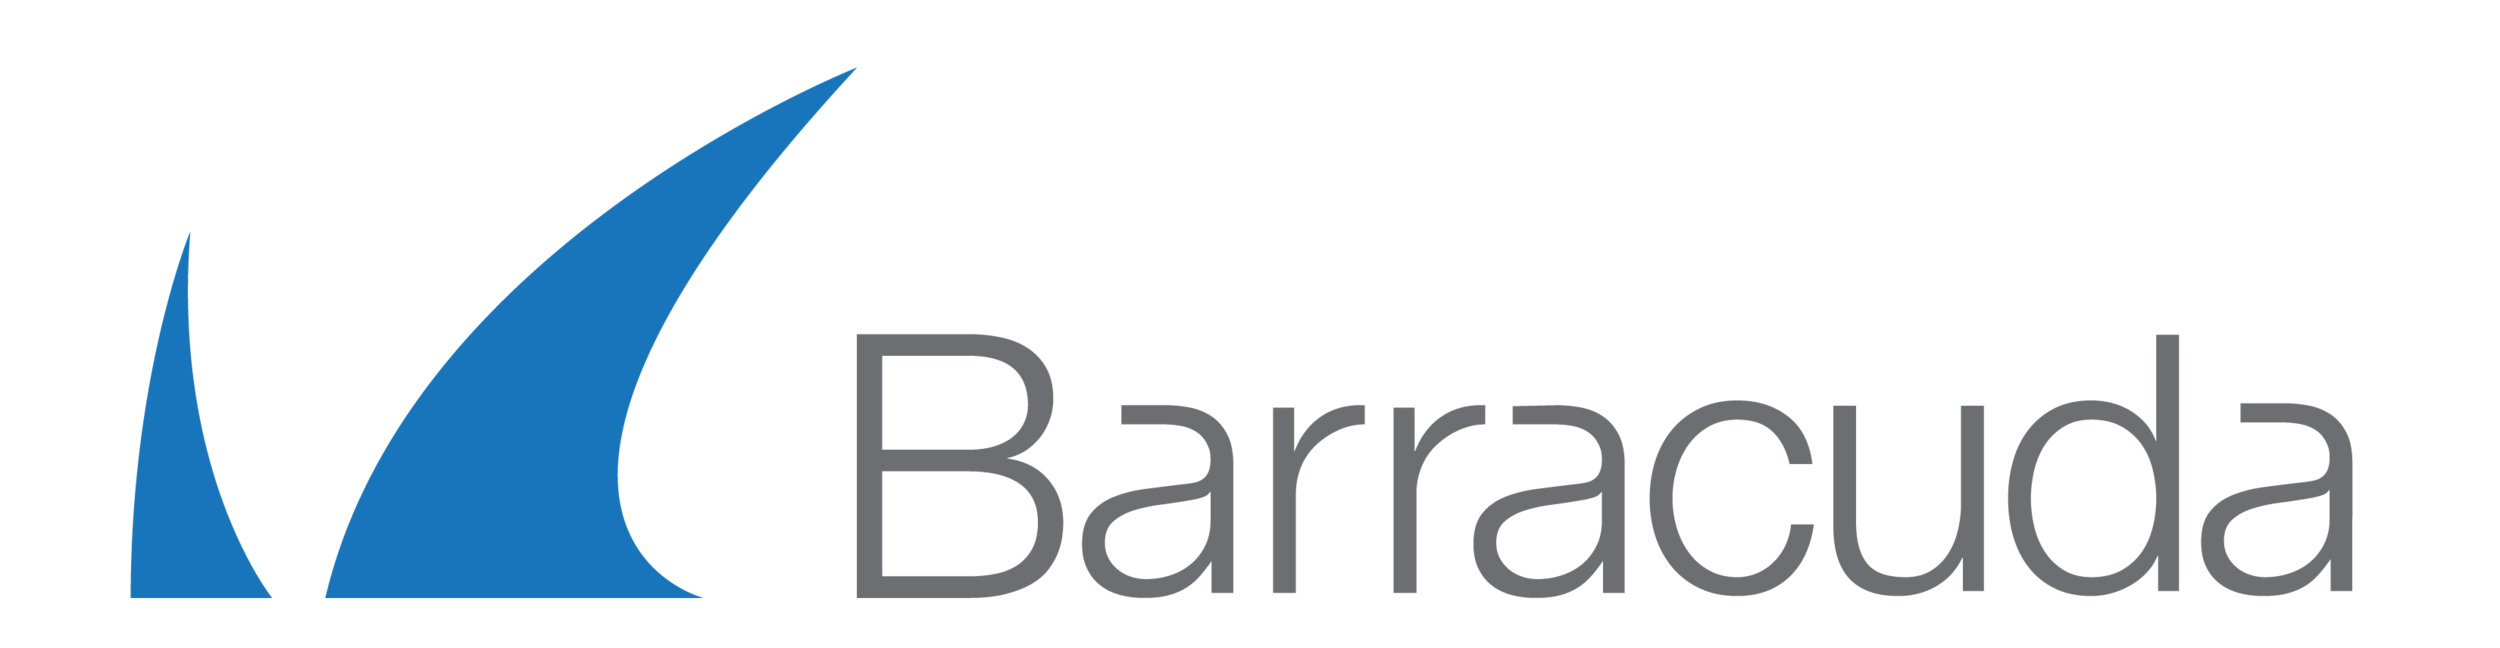 barracuda-networkslogo.png